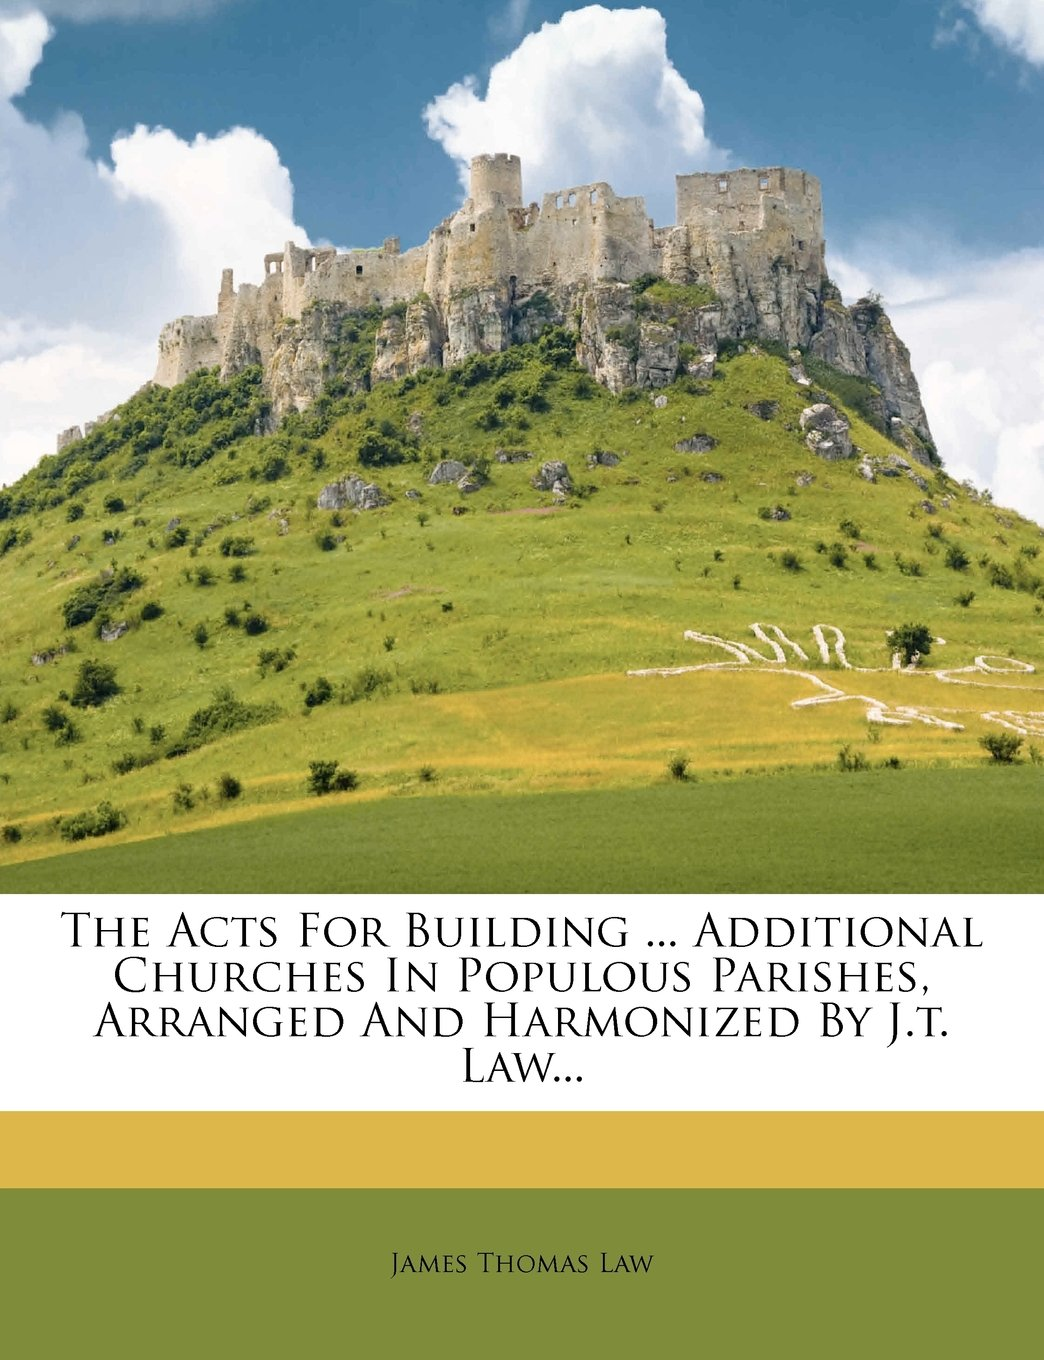 Download The Acts For Building ... Additional Churches In Populous Parishes, Arranged And Harmonized By J.t. Law... pdf epub